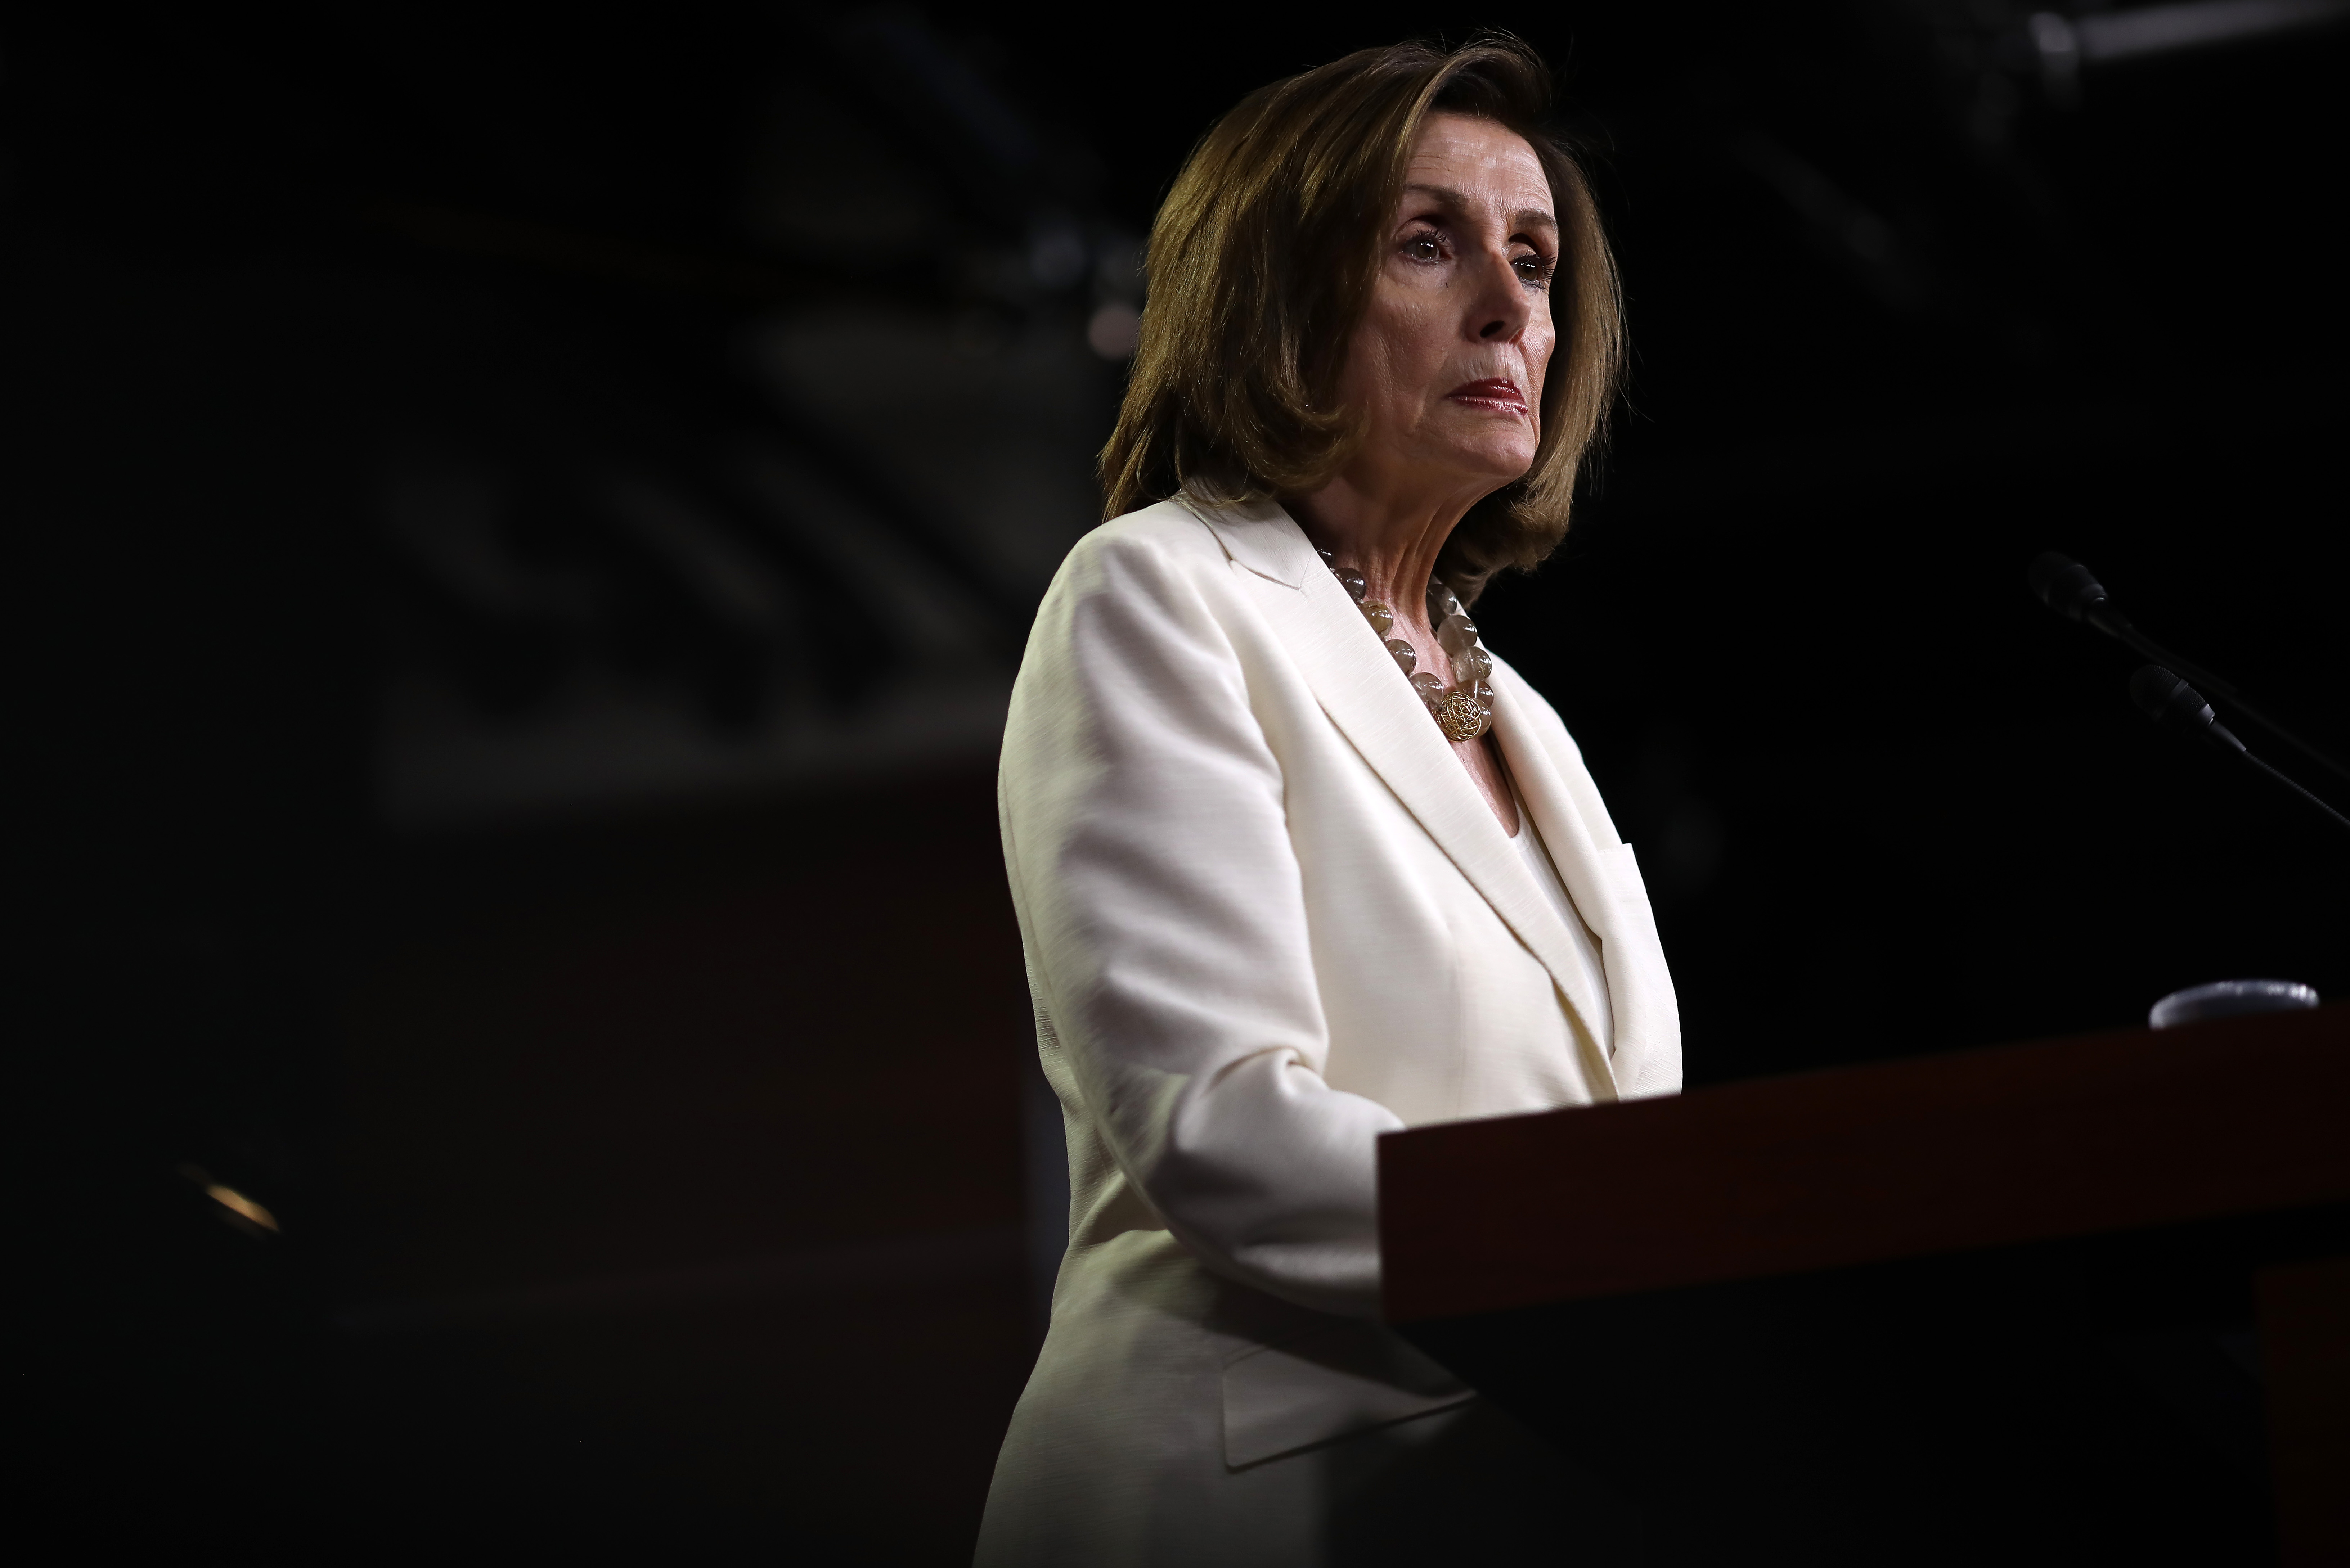 Speaker of the House Nancy Pelosi answers questions during a press conference at the U.S. Capitol on July 11, 2019 in Washington, DC. (Photo by Win McNamee/Getty Images)